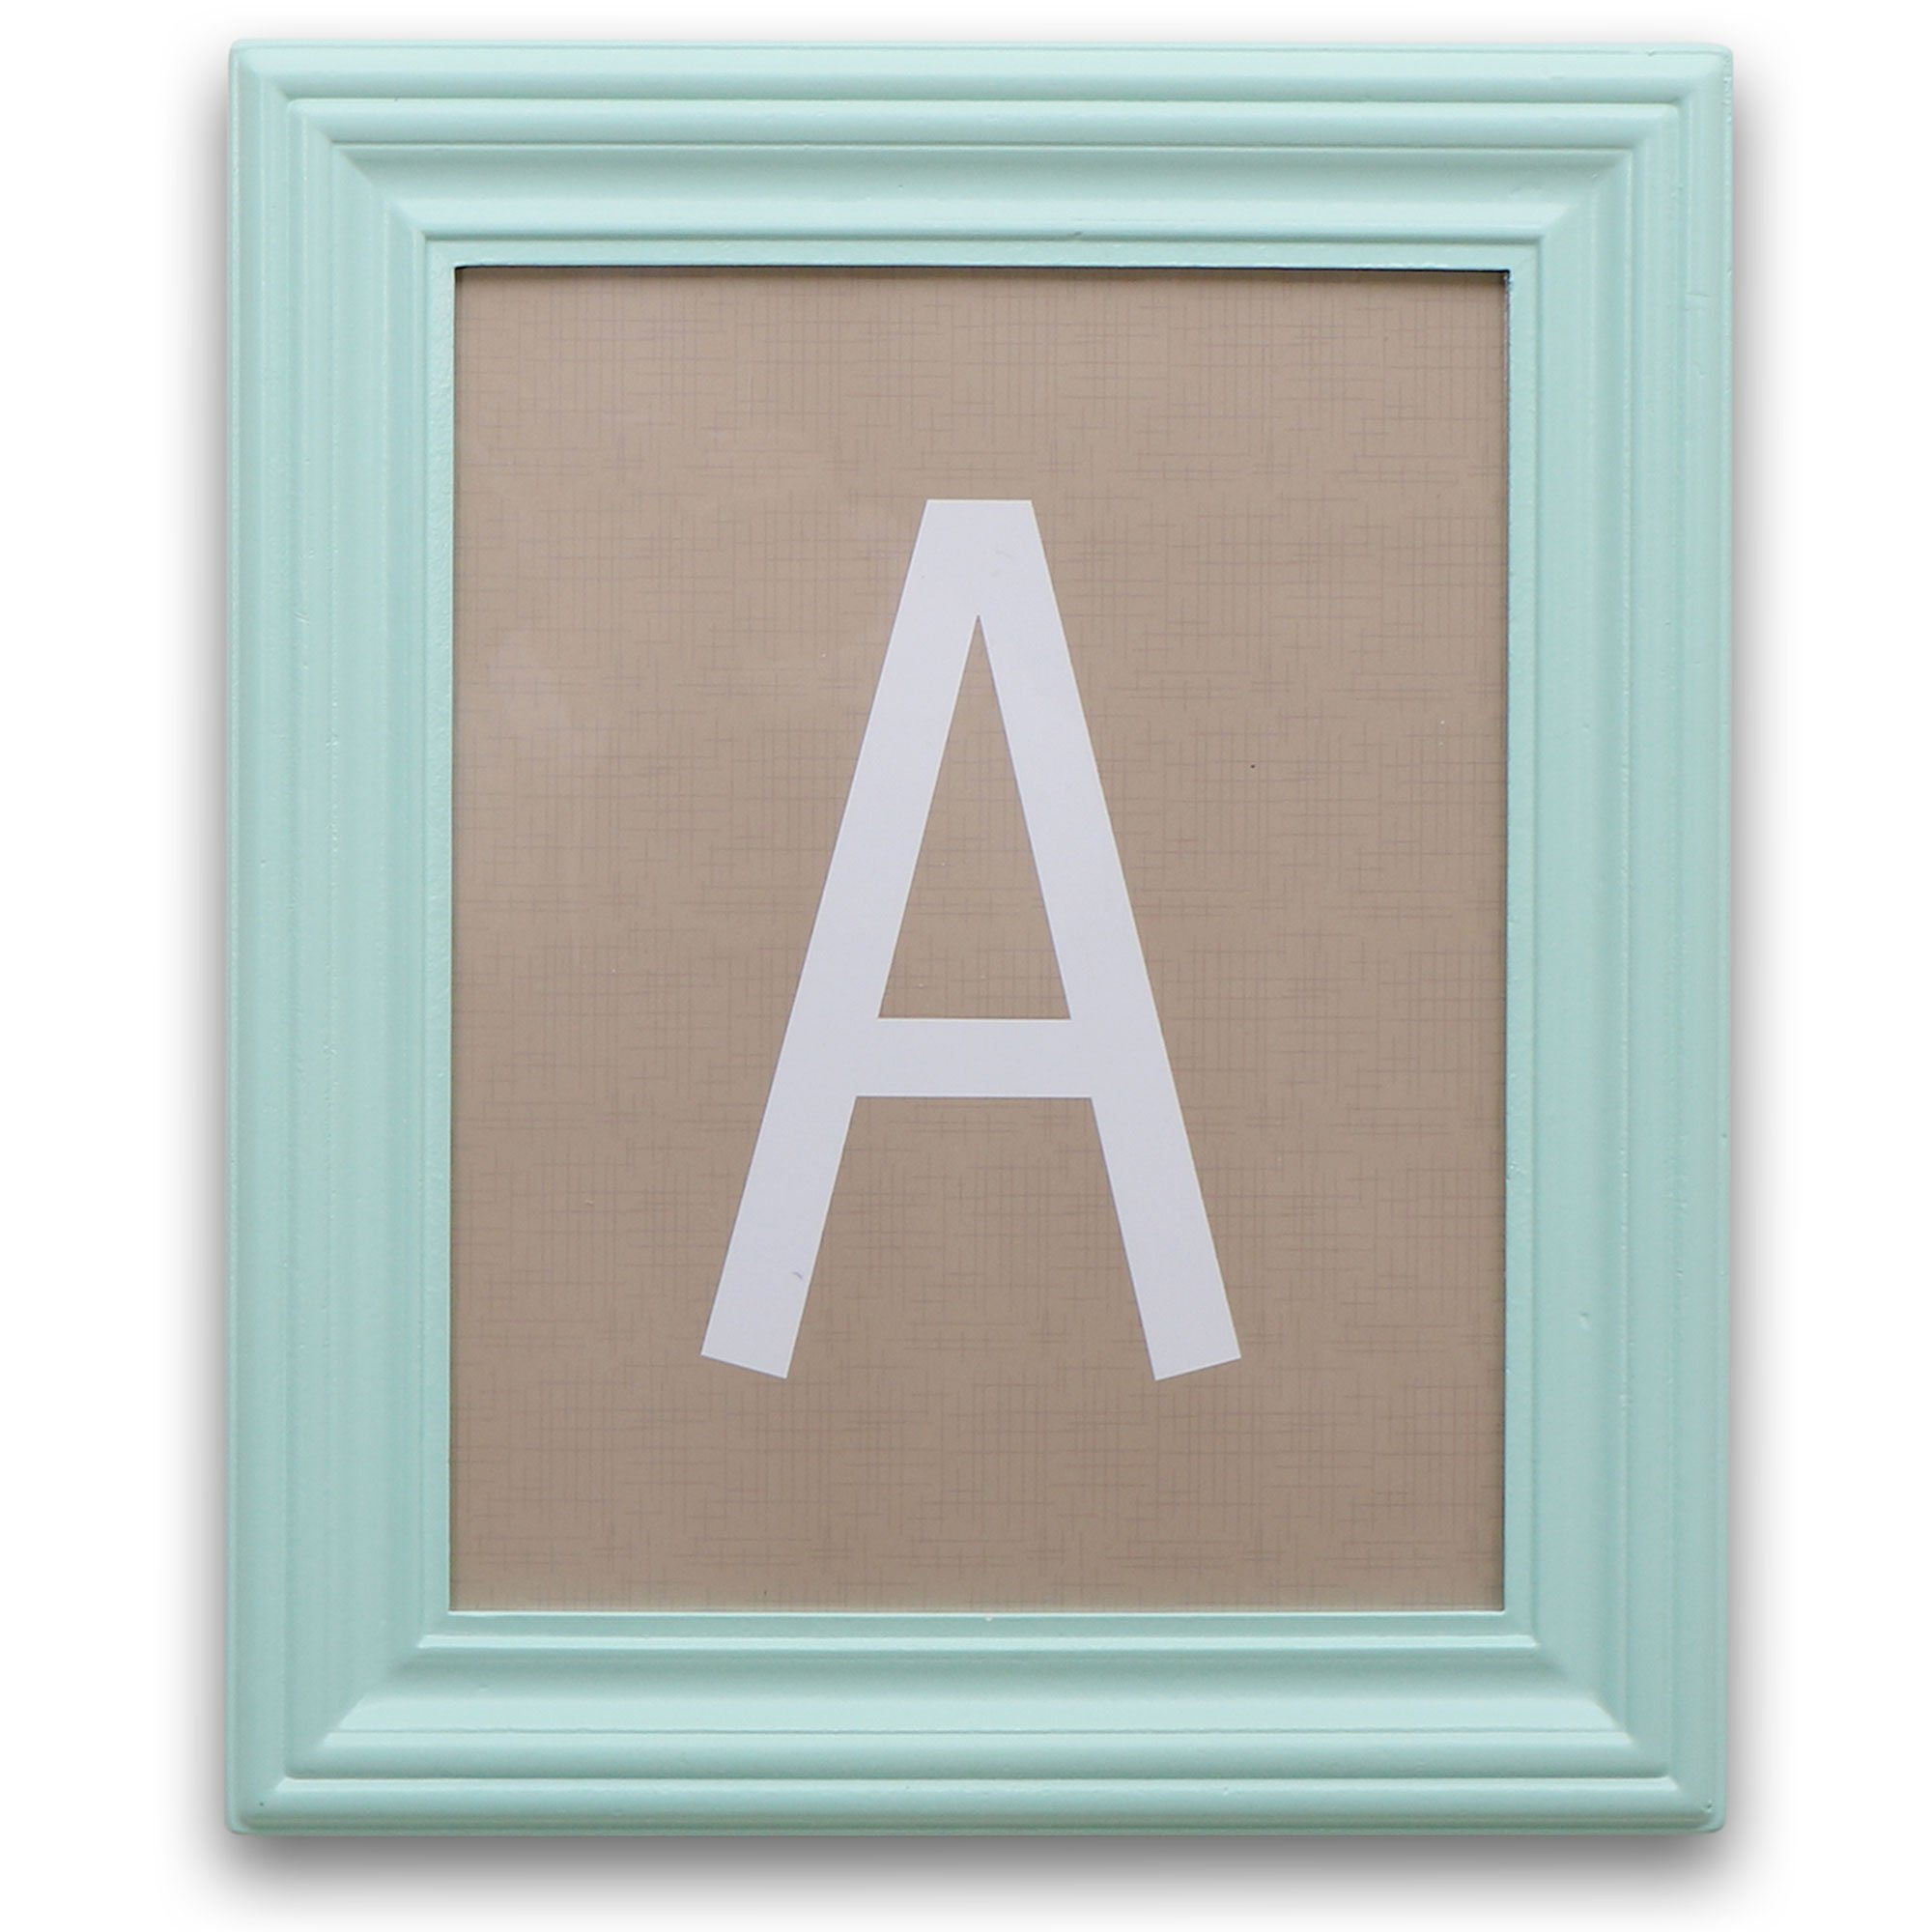 Aqua Framed White on Taupe Hanging Wall Letters, All 26 Letters Included